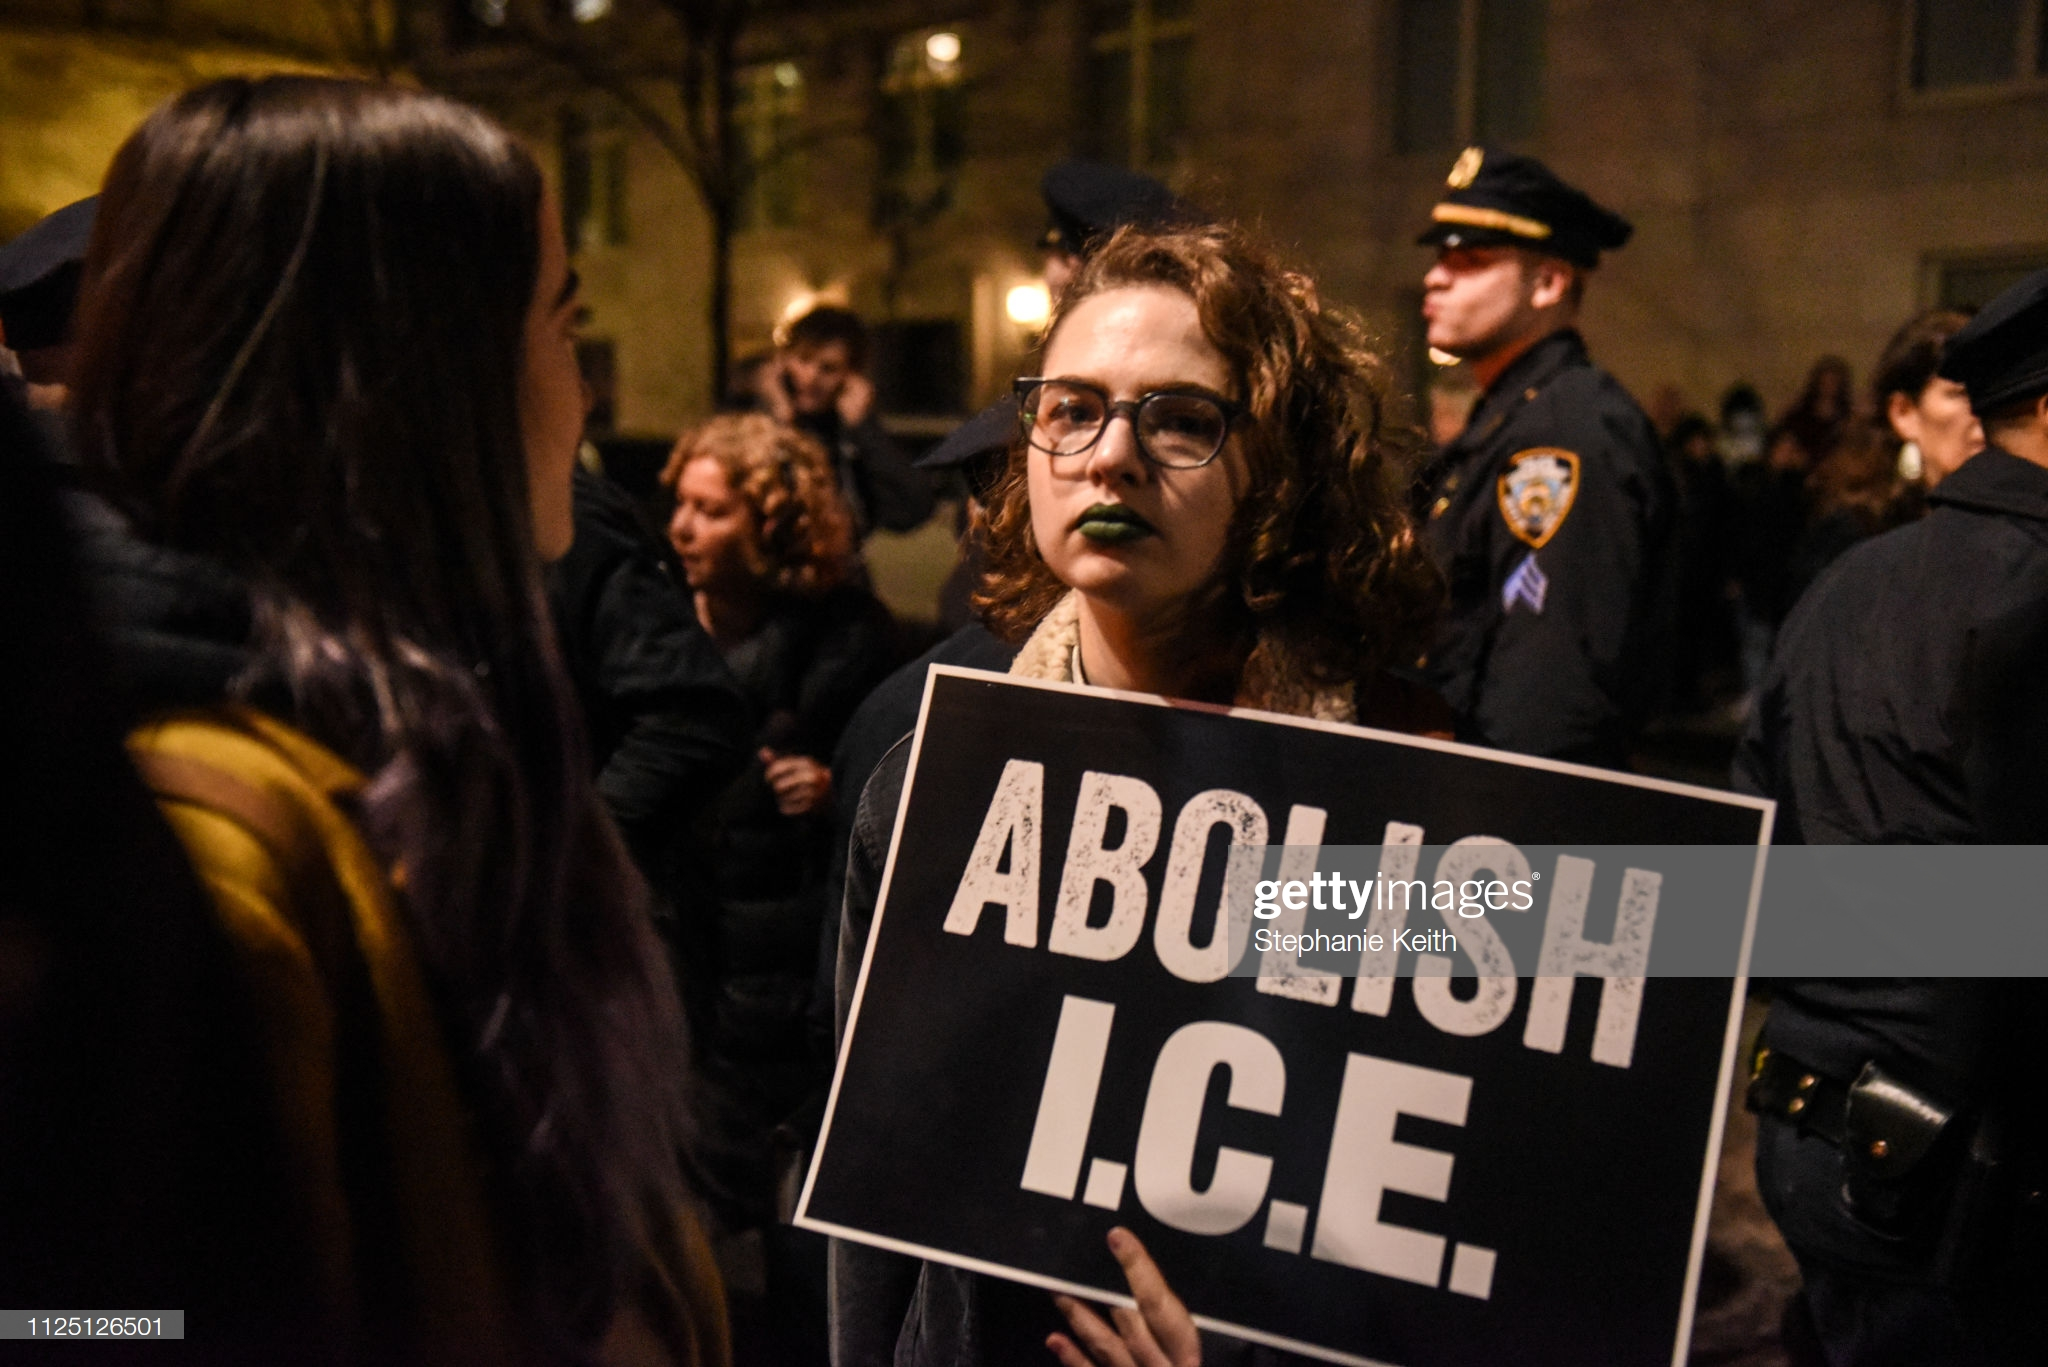 "NEW YORK, NY - FEBRUARY 15: People hold signs that read ""Abolish I.C.E."" in front of Trump International Hotel on February 15, 2019 in New York City. The group is protesting U.S. President Donald Trump's declaration of a National Emergency in order to build his proposed border wall. (Photo by Stephanie Keith/Getty Images)"